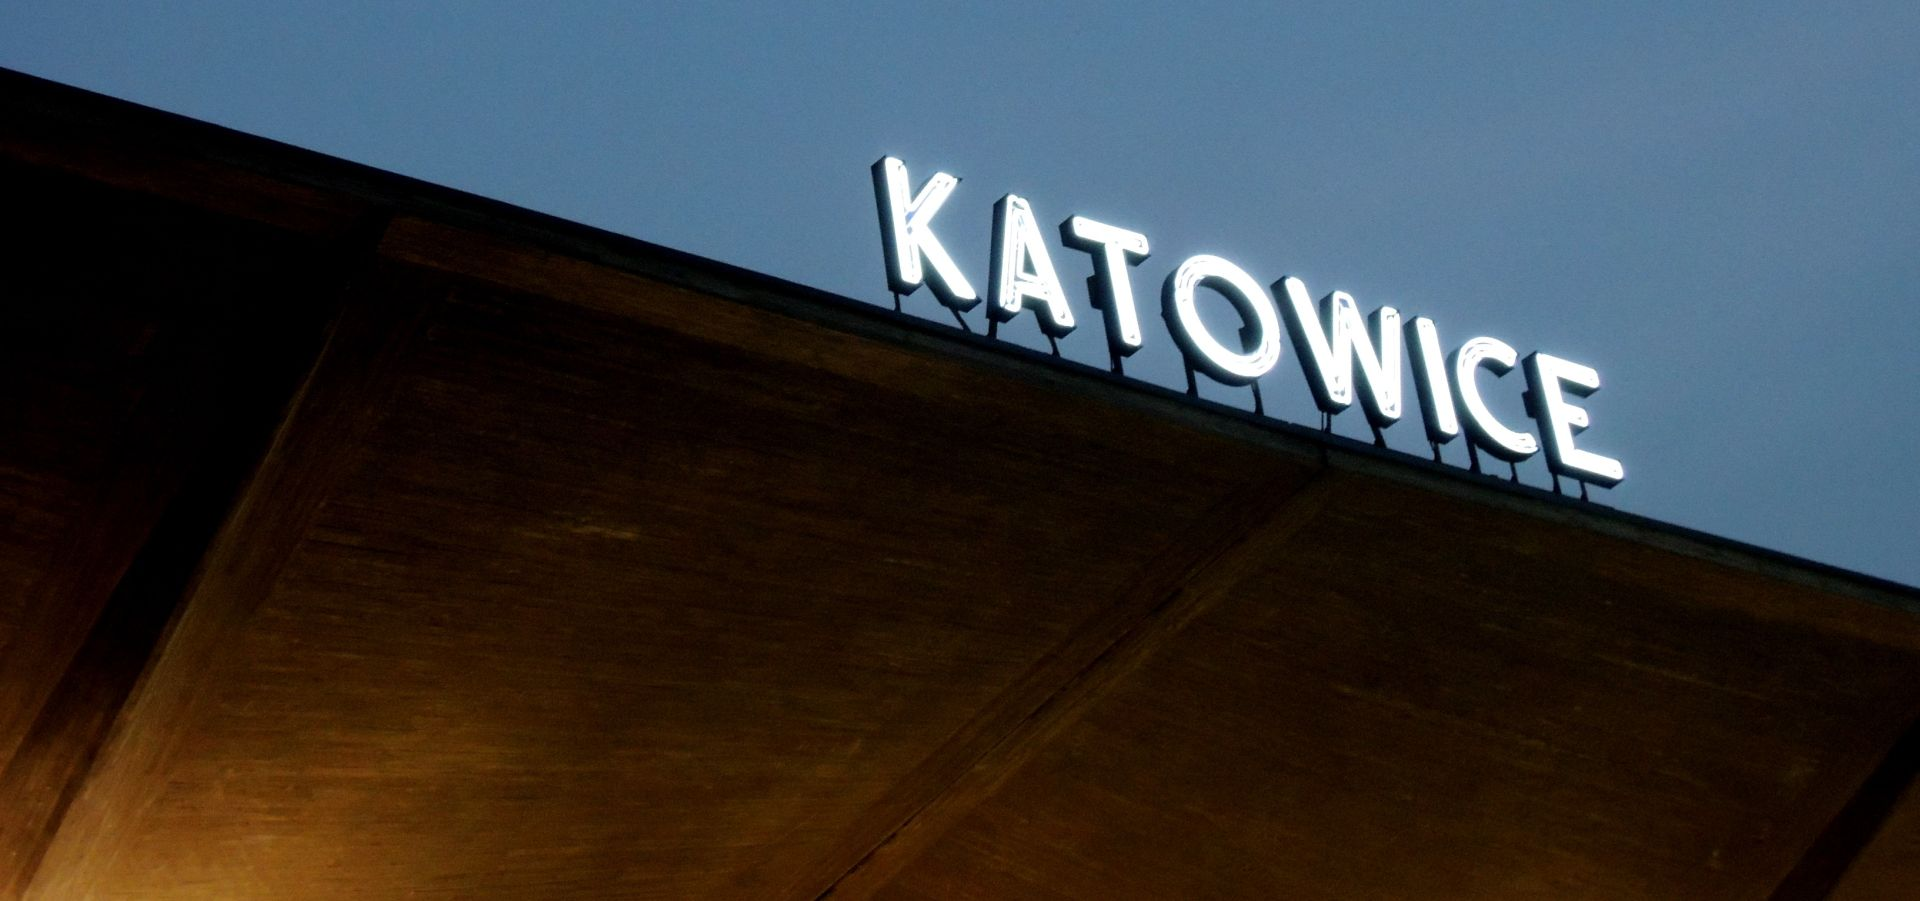 image of lettering on top of a building reading katowice, seen from below in the dark